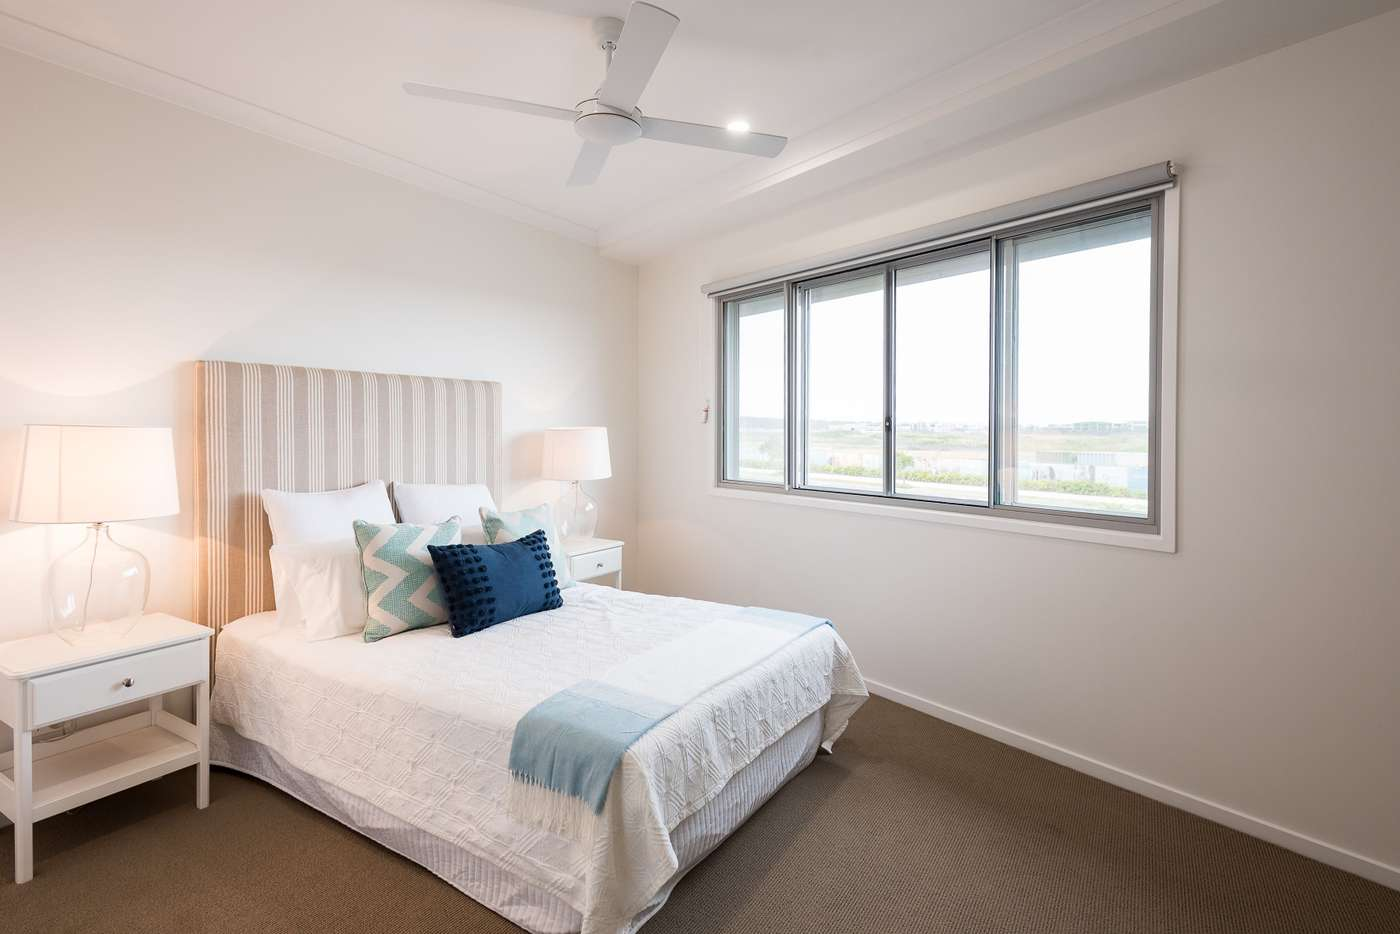 Seventh view of Homely unit listing, 5 Affinity Place, Birtinya QLD 4575